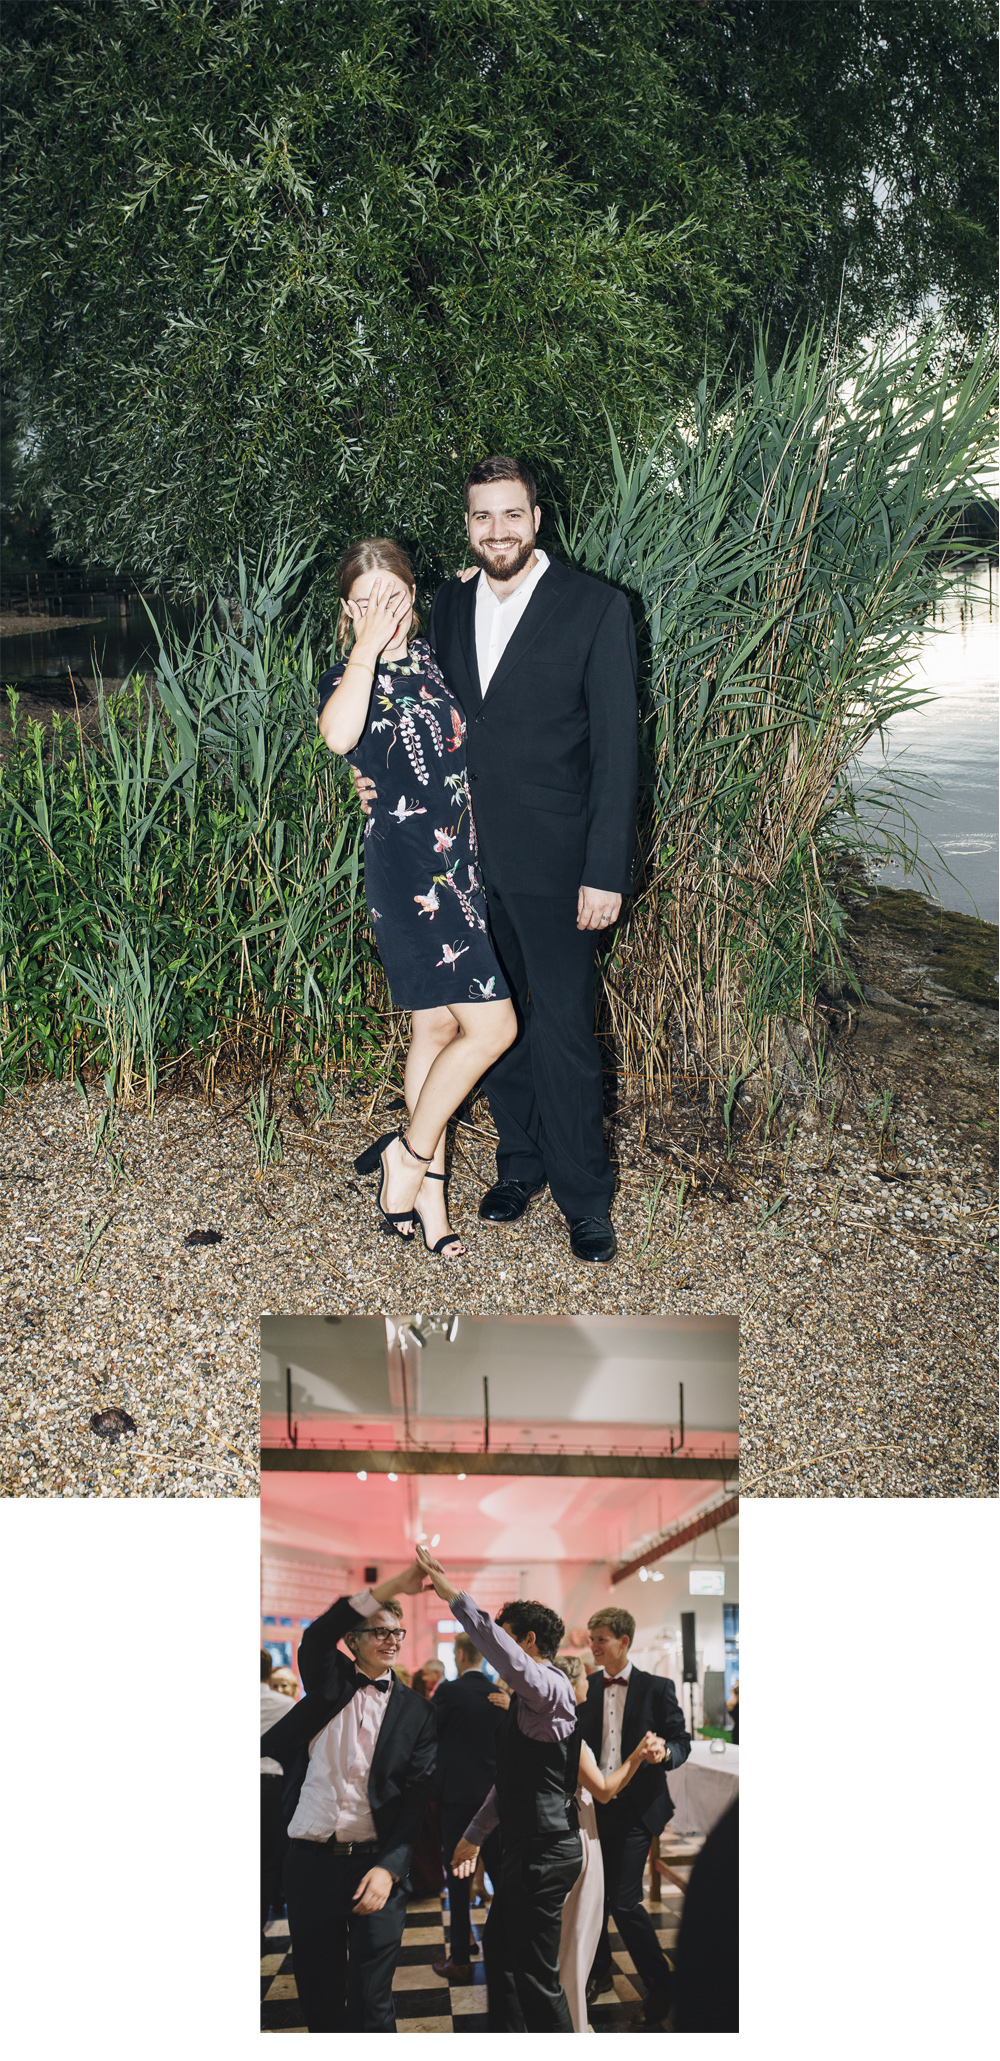 Graduation Ball, Visual Diary on The Curly Head, a Blog from Munich, Photography by Amelie Niederbuchner